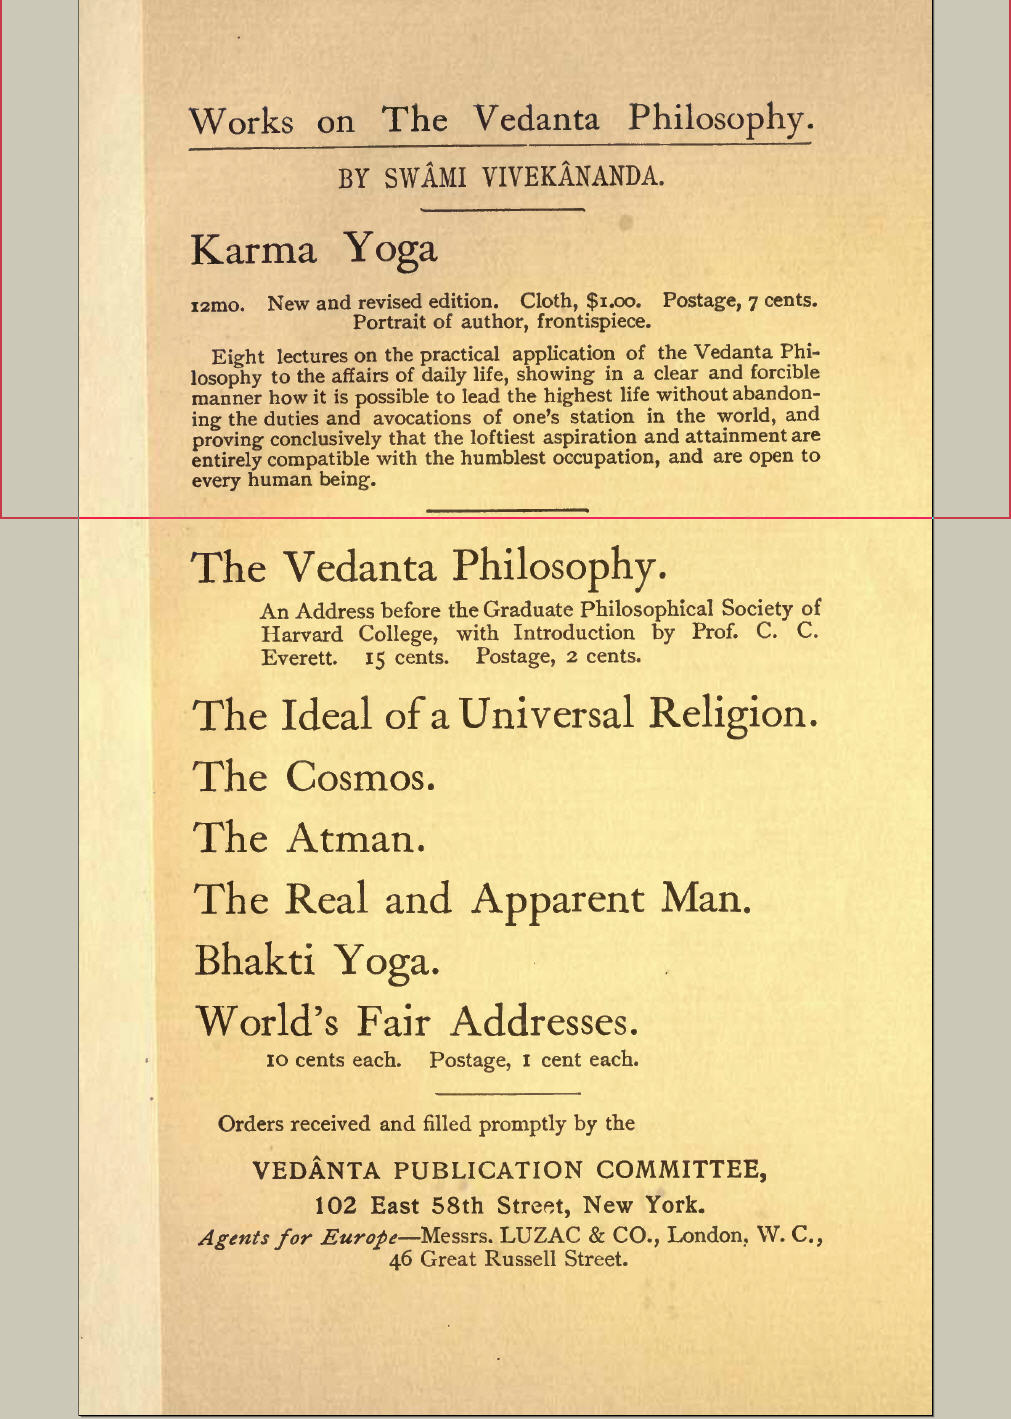 essay swami vivekananda essay on mahavir swami in hindi to swami  library online frank parlato jr the unauthorized edward sturdy edition of s bhakti yoga later drawn